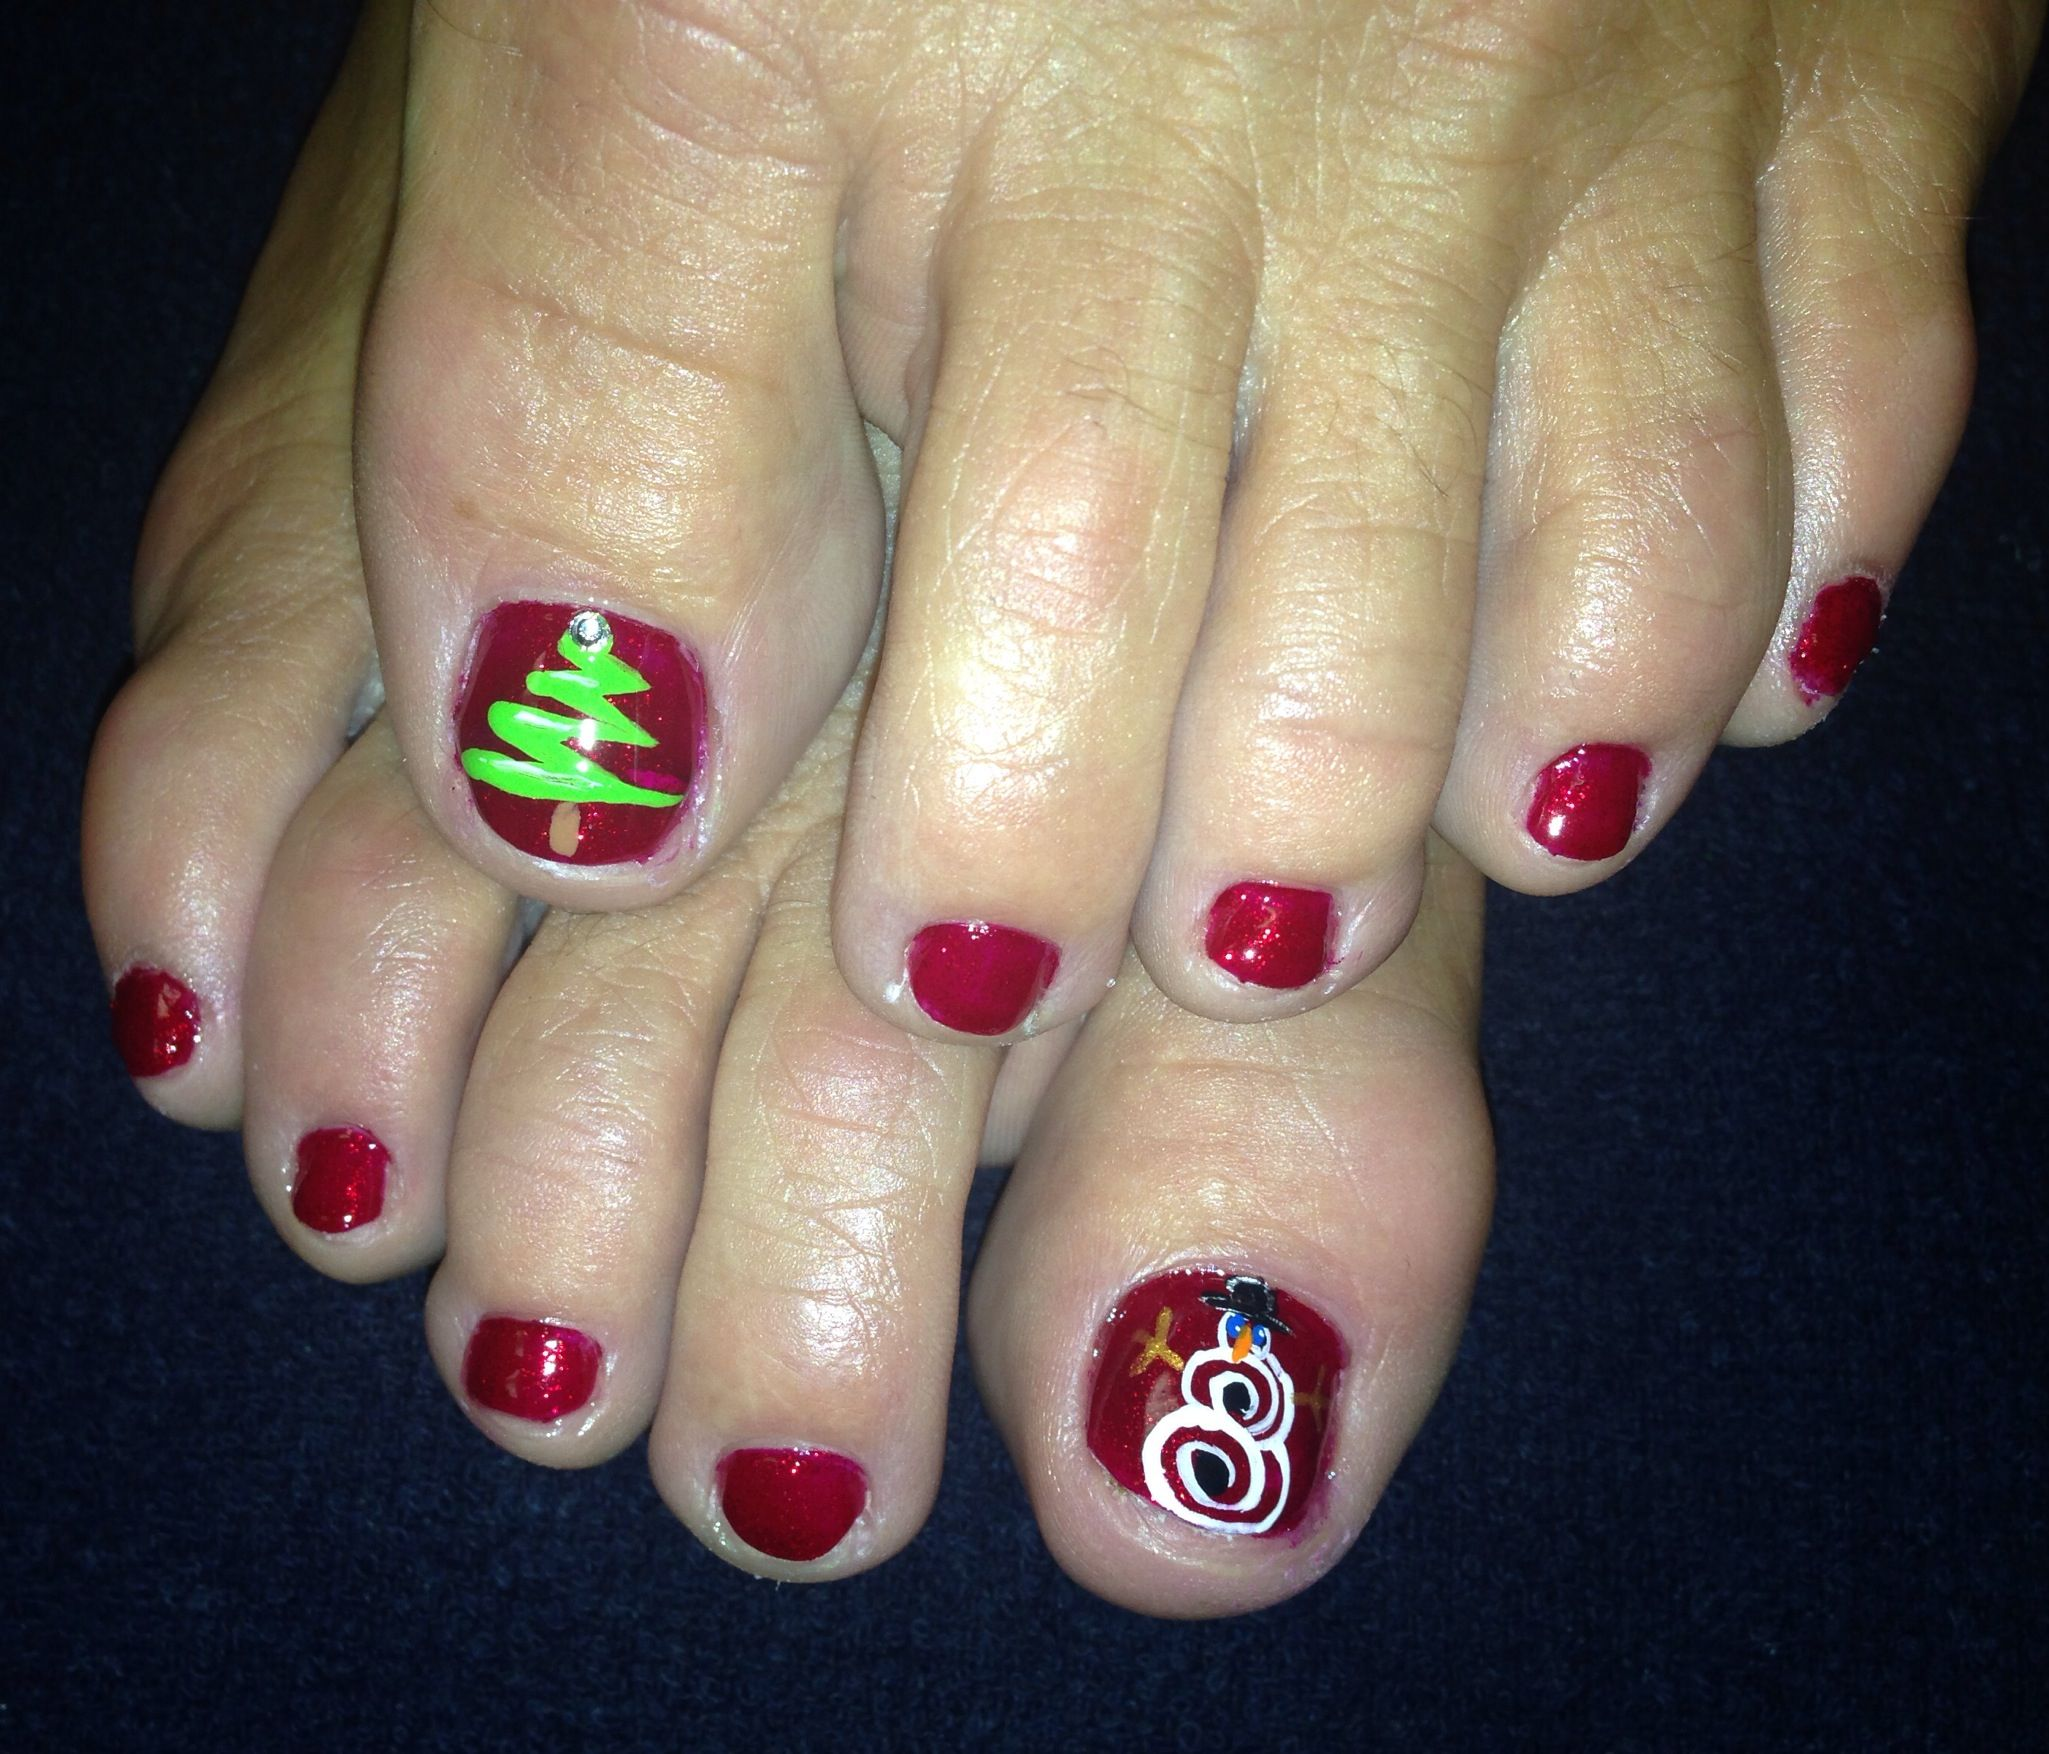 Toe Nail Art Holidays: Merry Christmas Toe Nail Art Designs & Ideas 2017